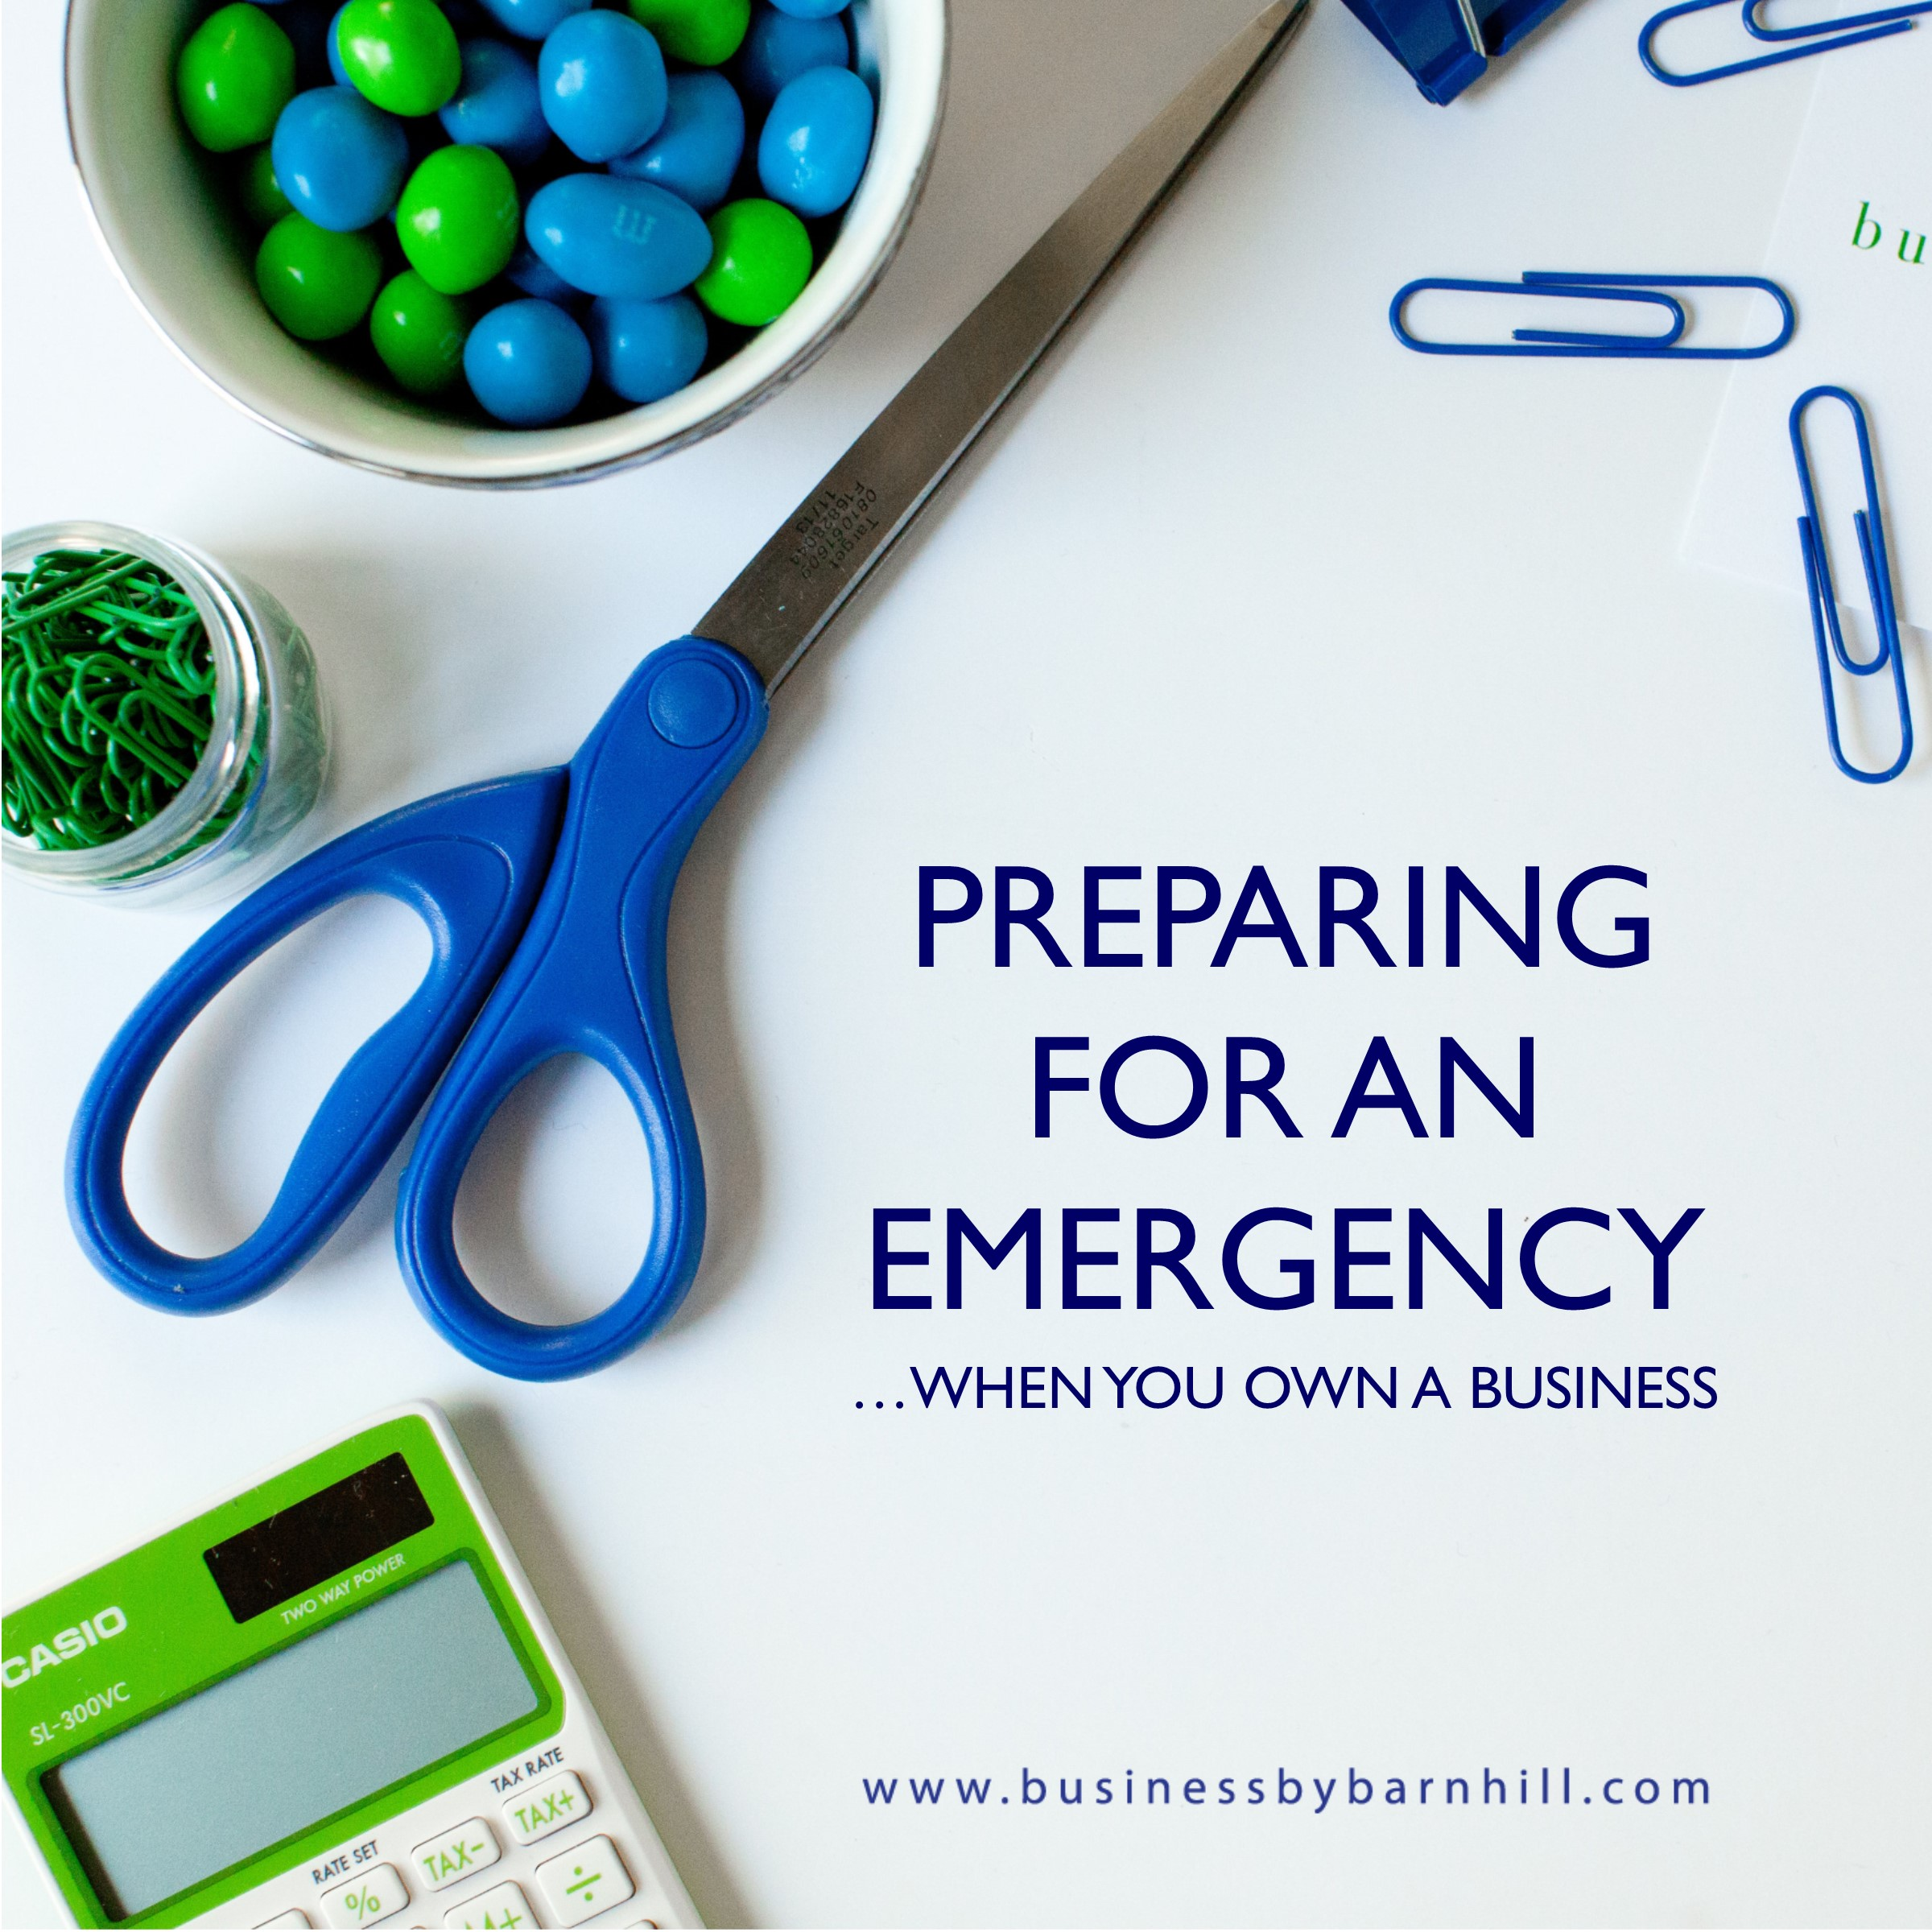 business by barnhill preparing for an emergency as a business owner.jpg